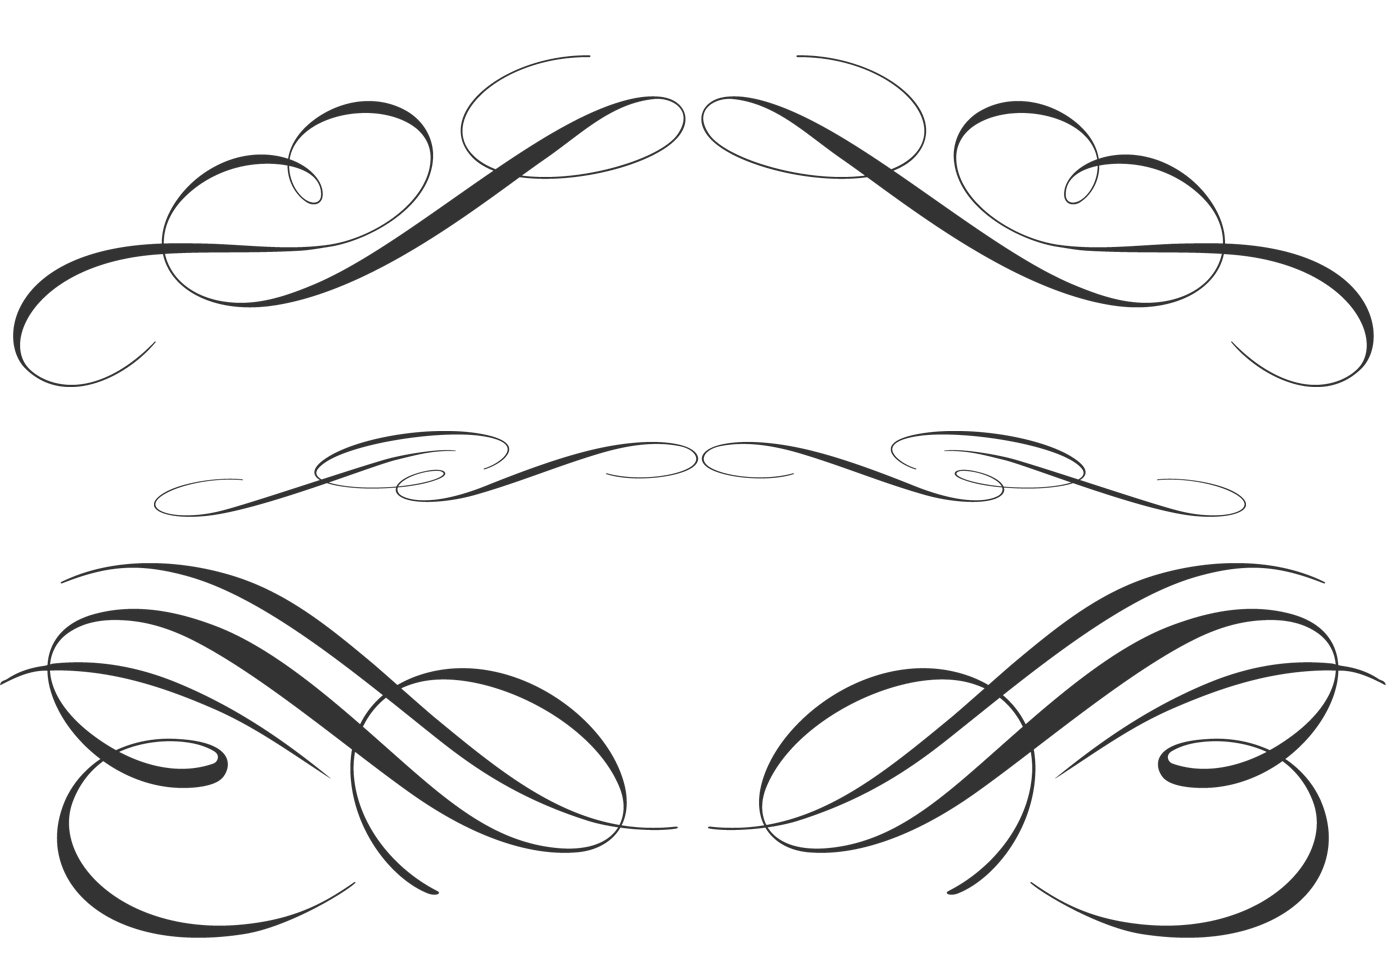 free calligraphic ornament brushes free photoshop